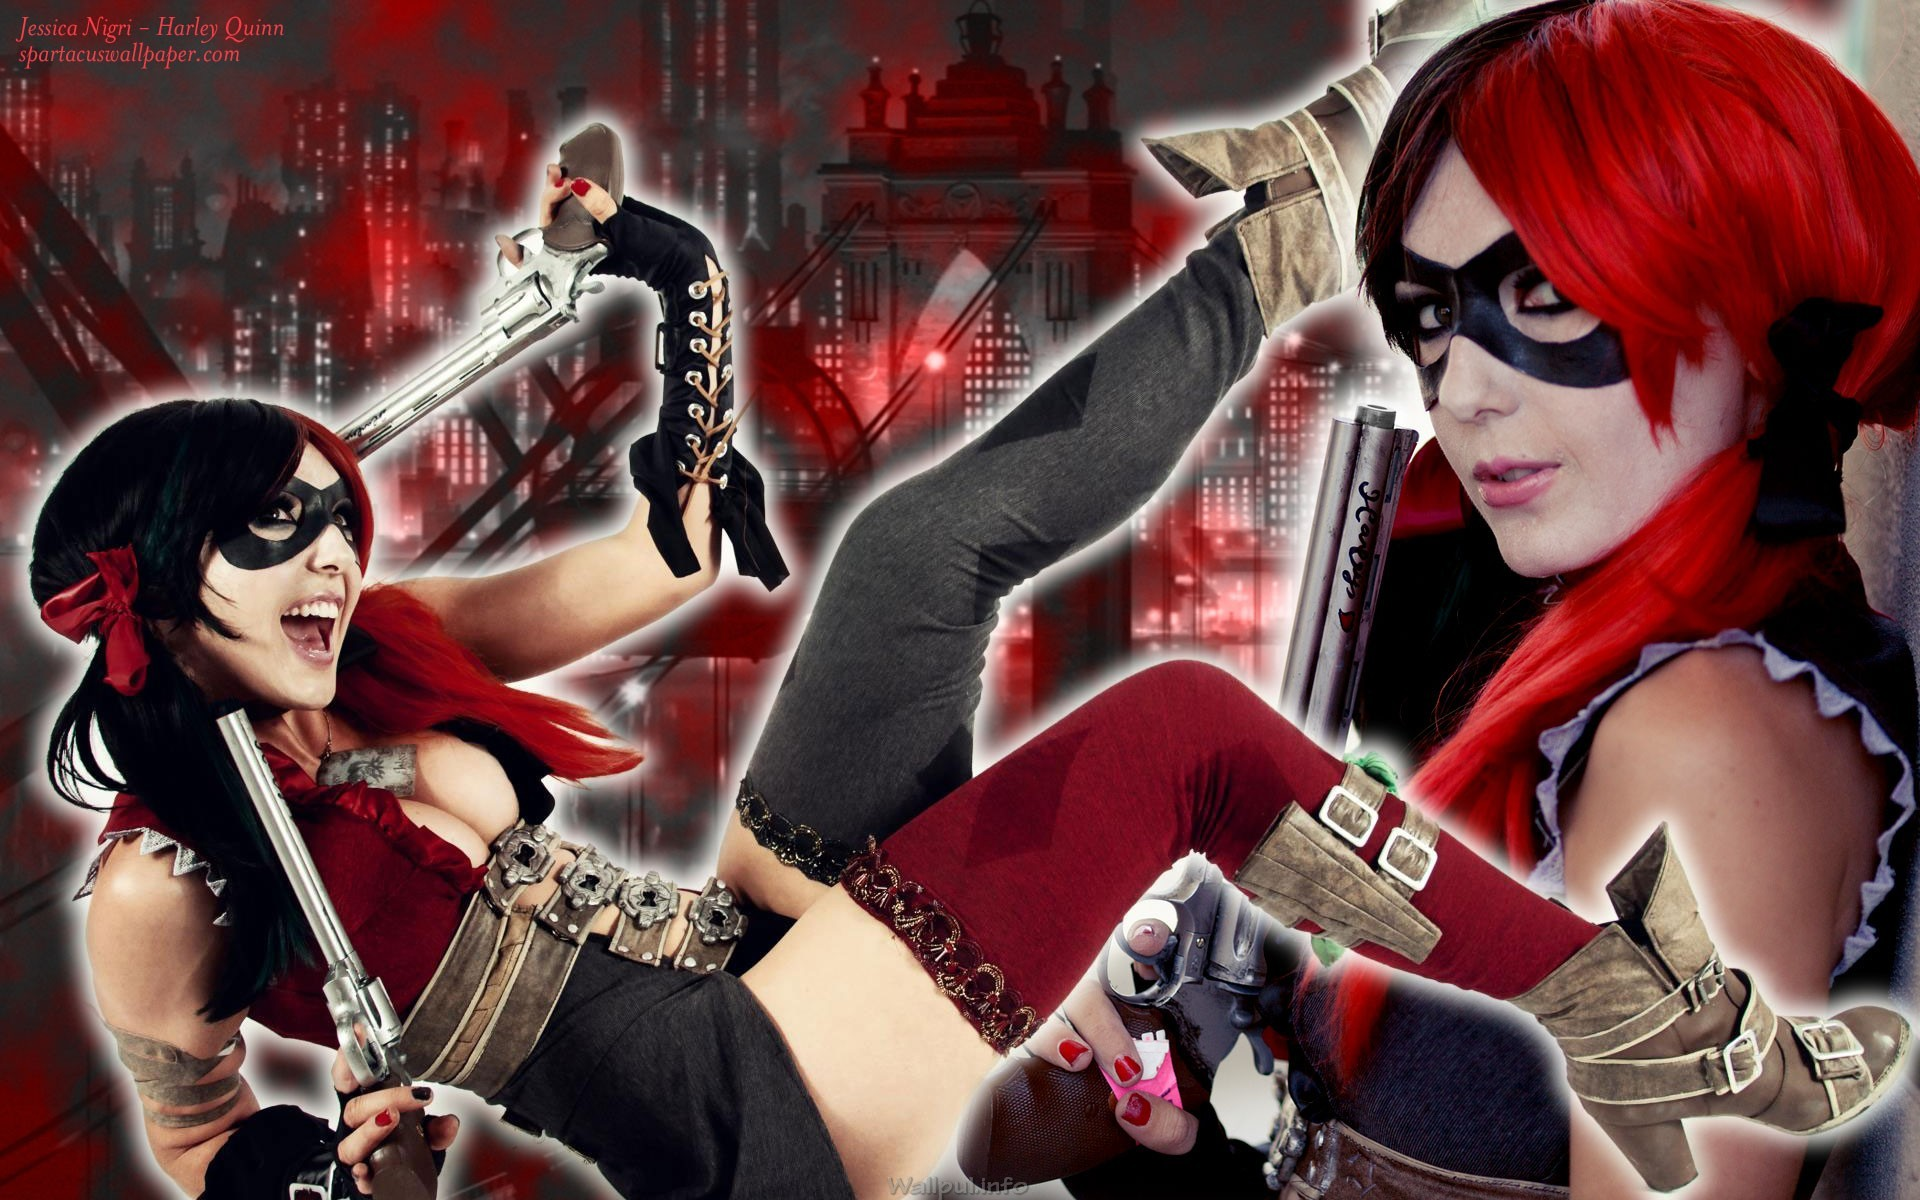 Harley Quinn Suicide Squad Wallpapers – Wallpul HD Wallpapers